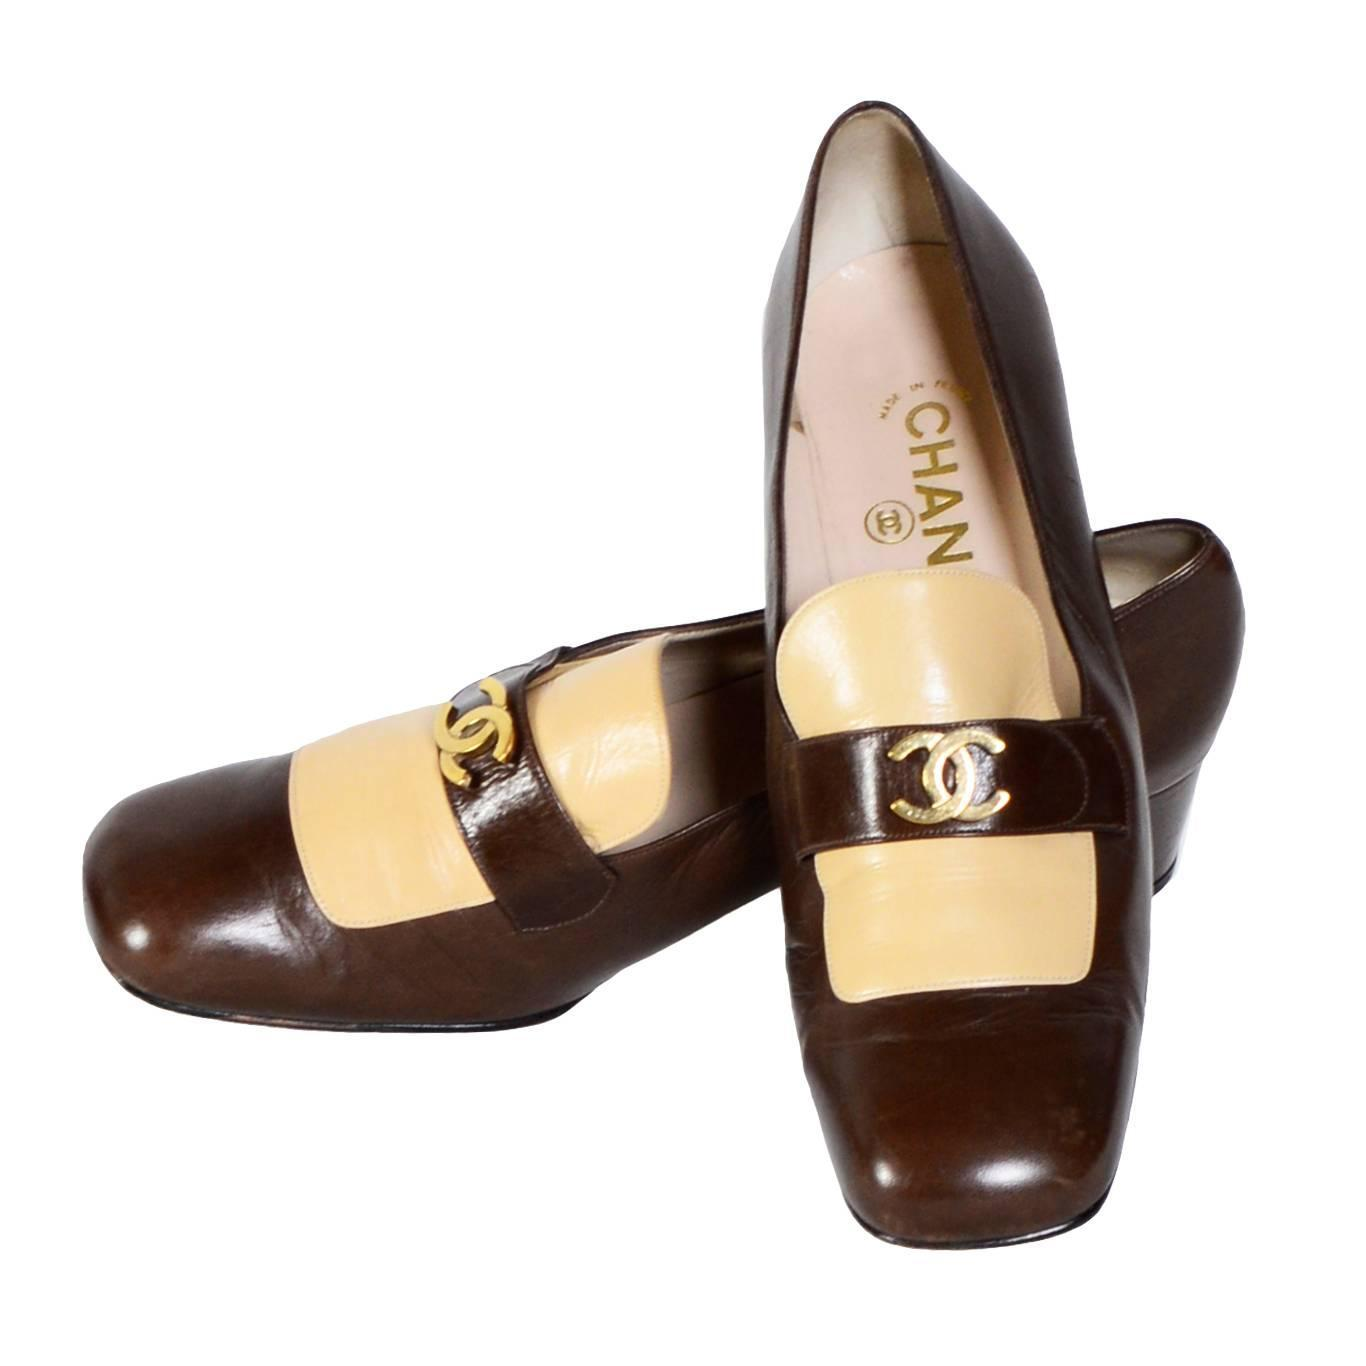 Chanel Leather Shoes How To Condition